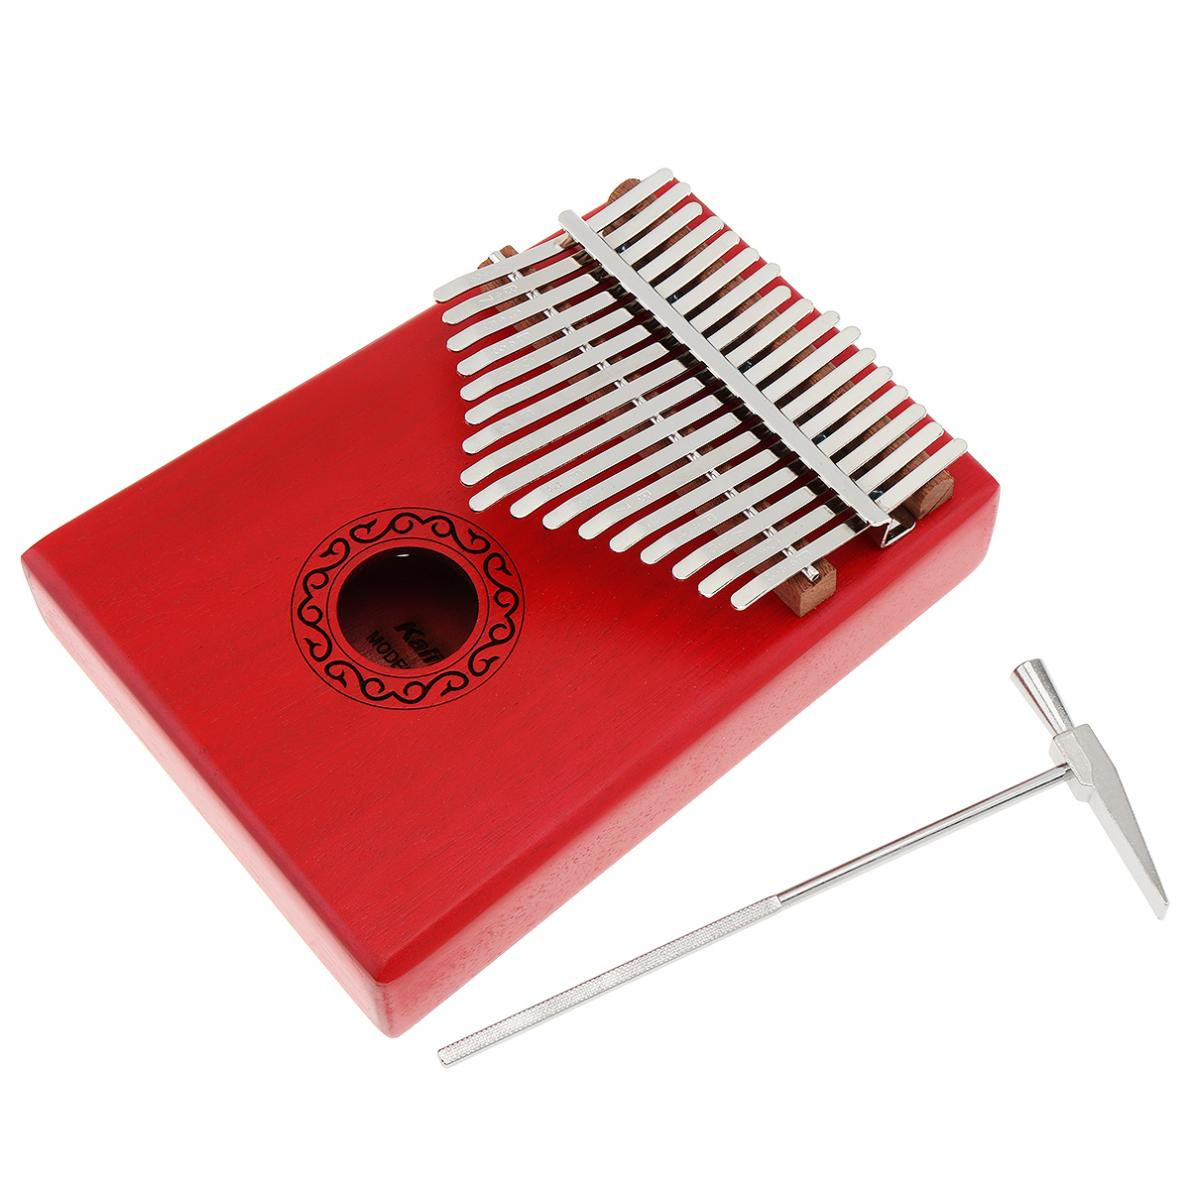 17 Key Red Kalimba Single Board Mahogany Thumb Piano Mbira Mini Keyboard Instrument with Complete Accessories Thumb Piano enlarge